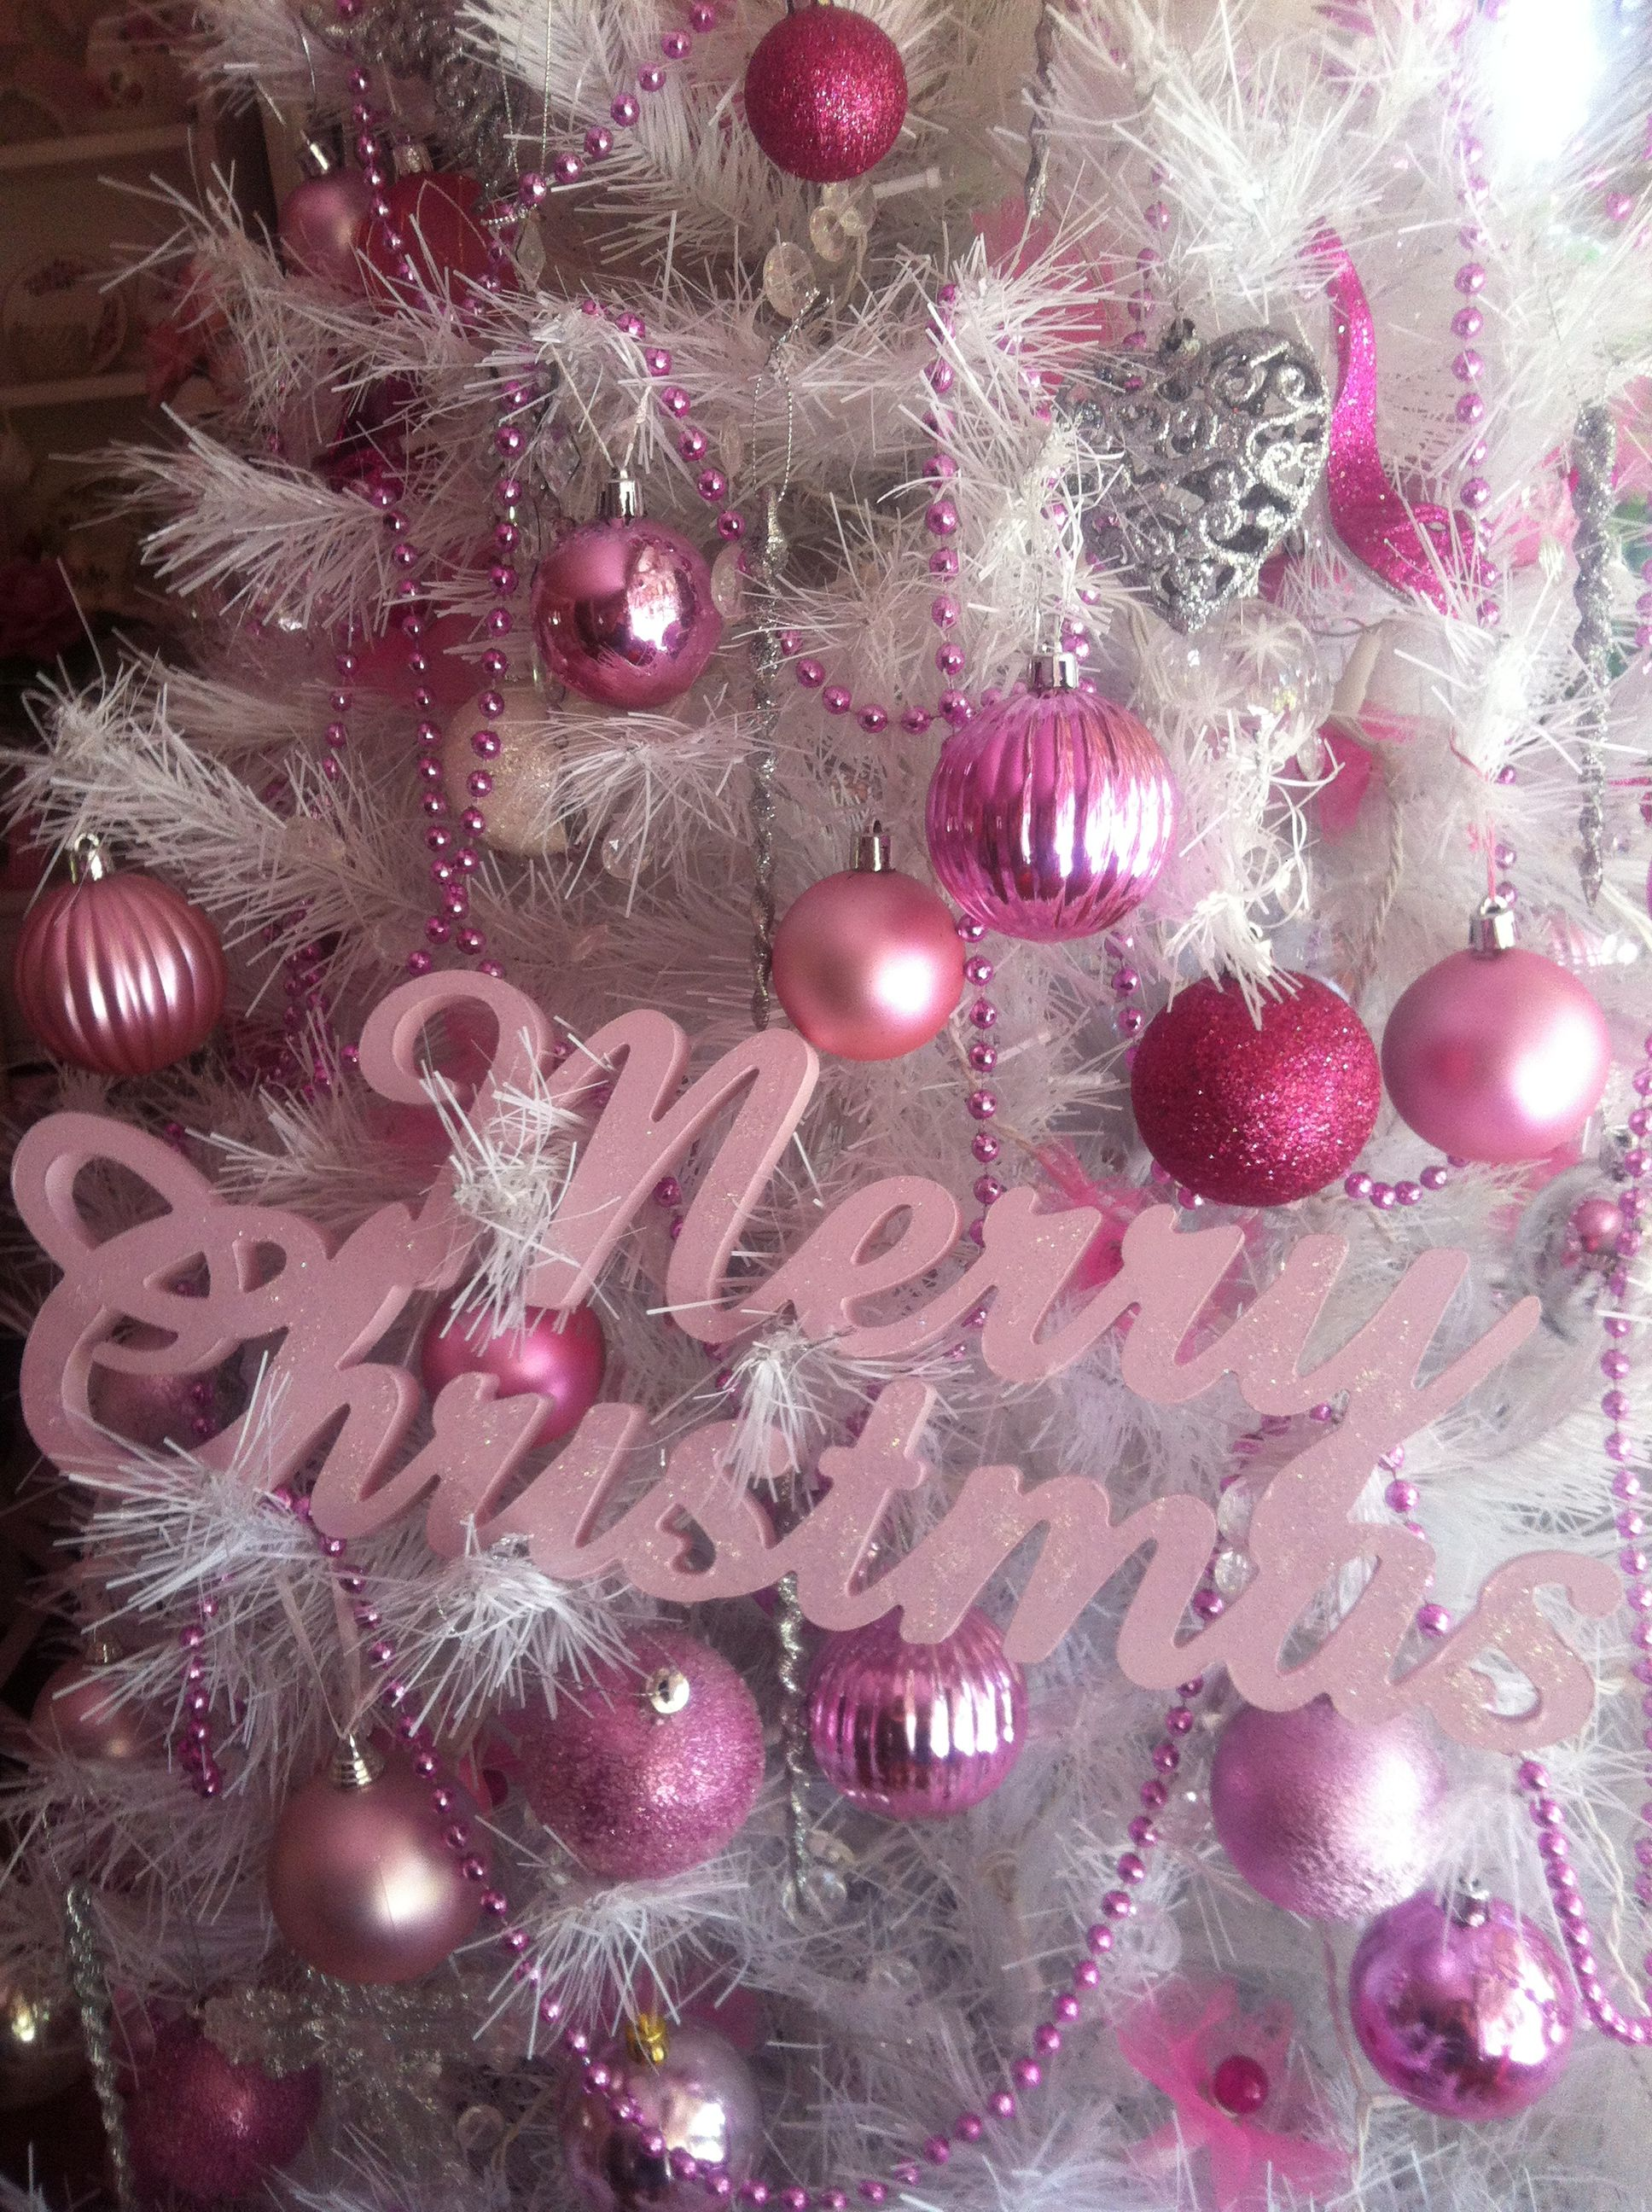 Merry Christmas♥ in pink!!! Bebe'!!! Love this tree decorated in ...